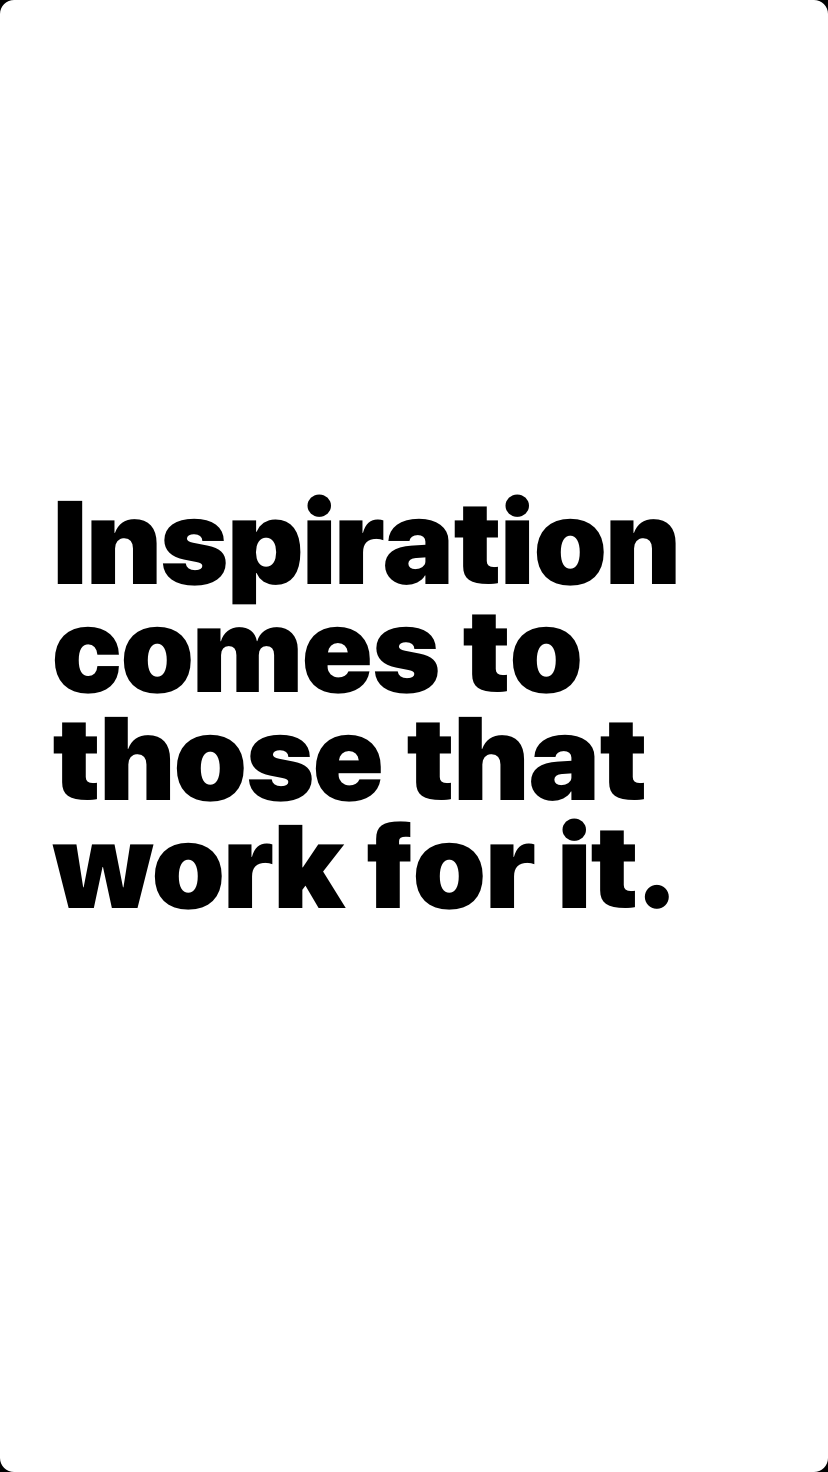 Inspiration comes to those that work for it.